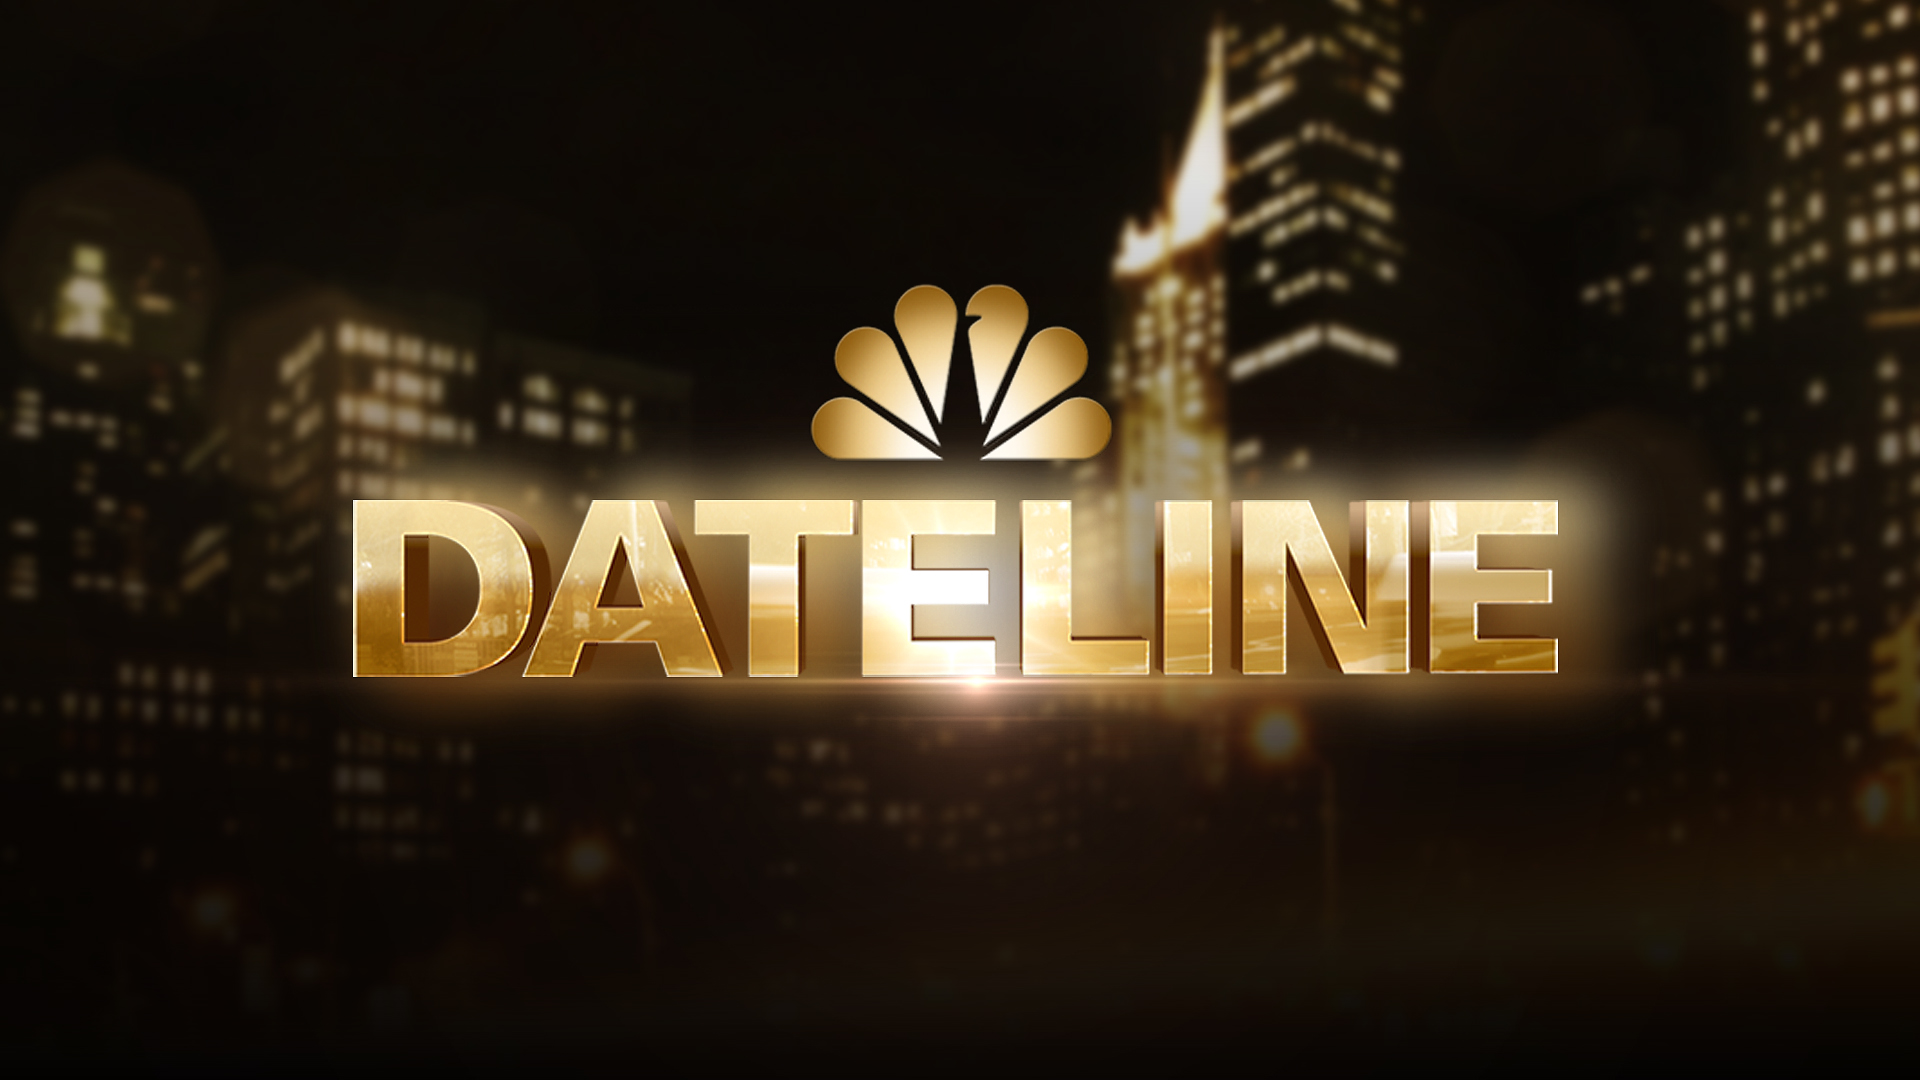 Dateline NBC News stories about crime, celebrity and health3